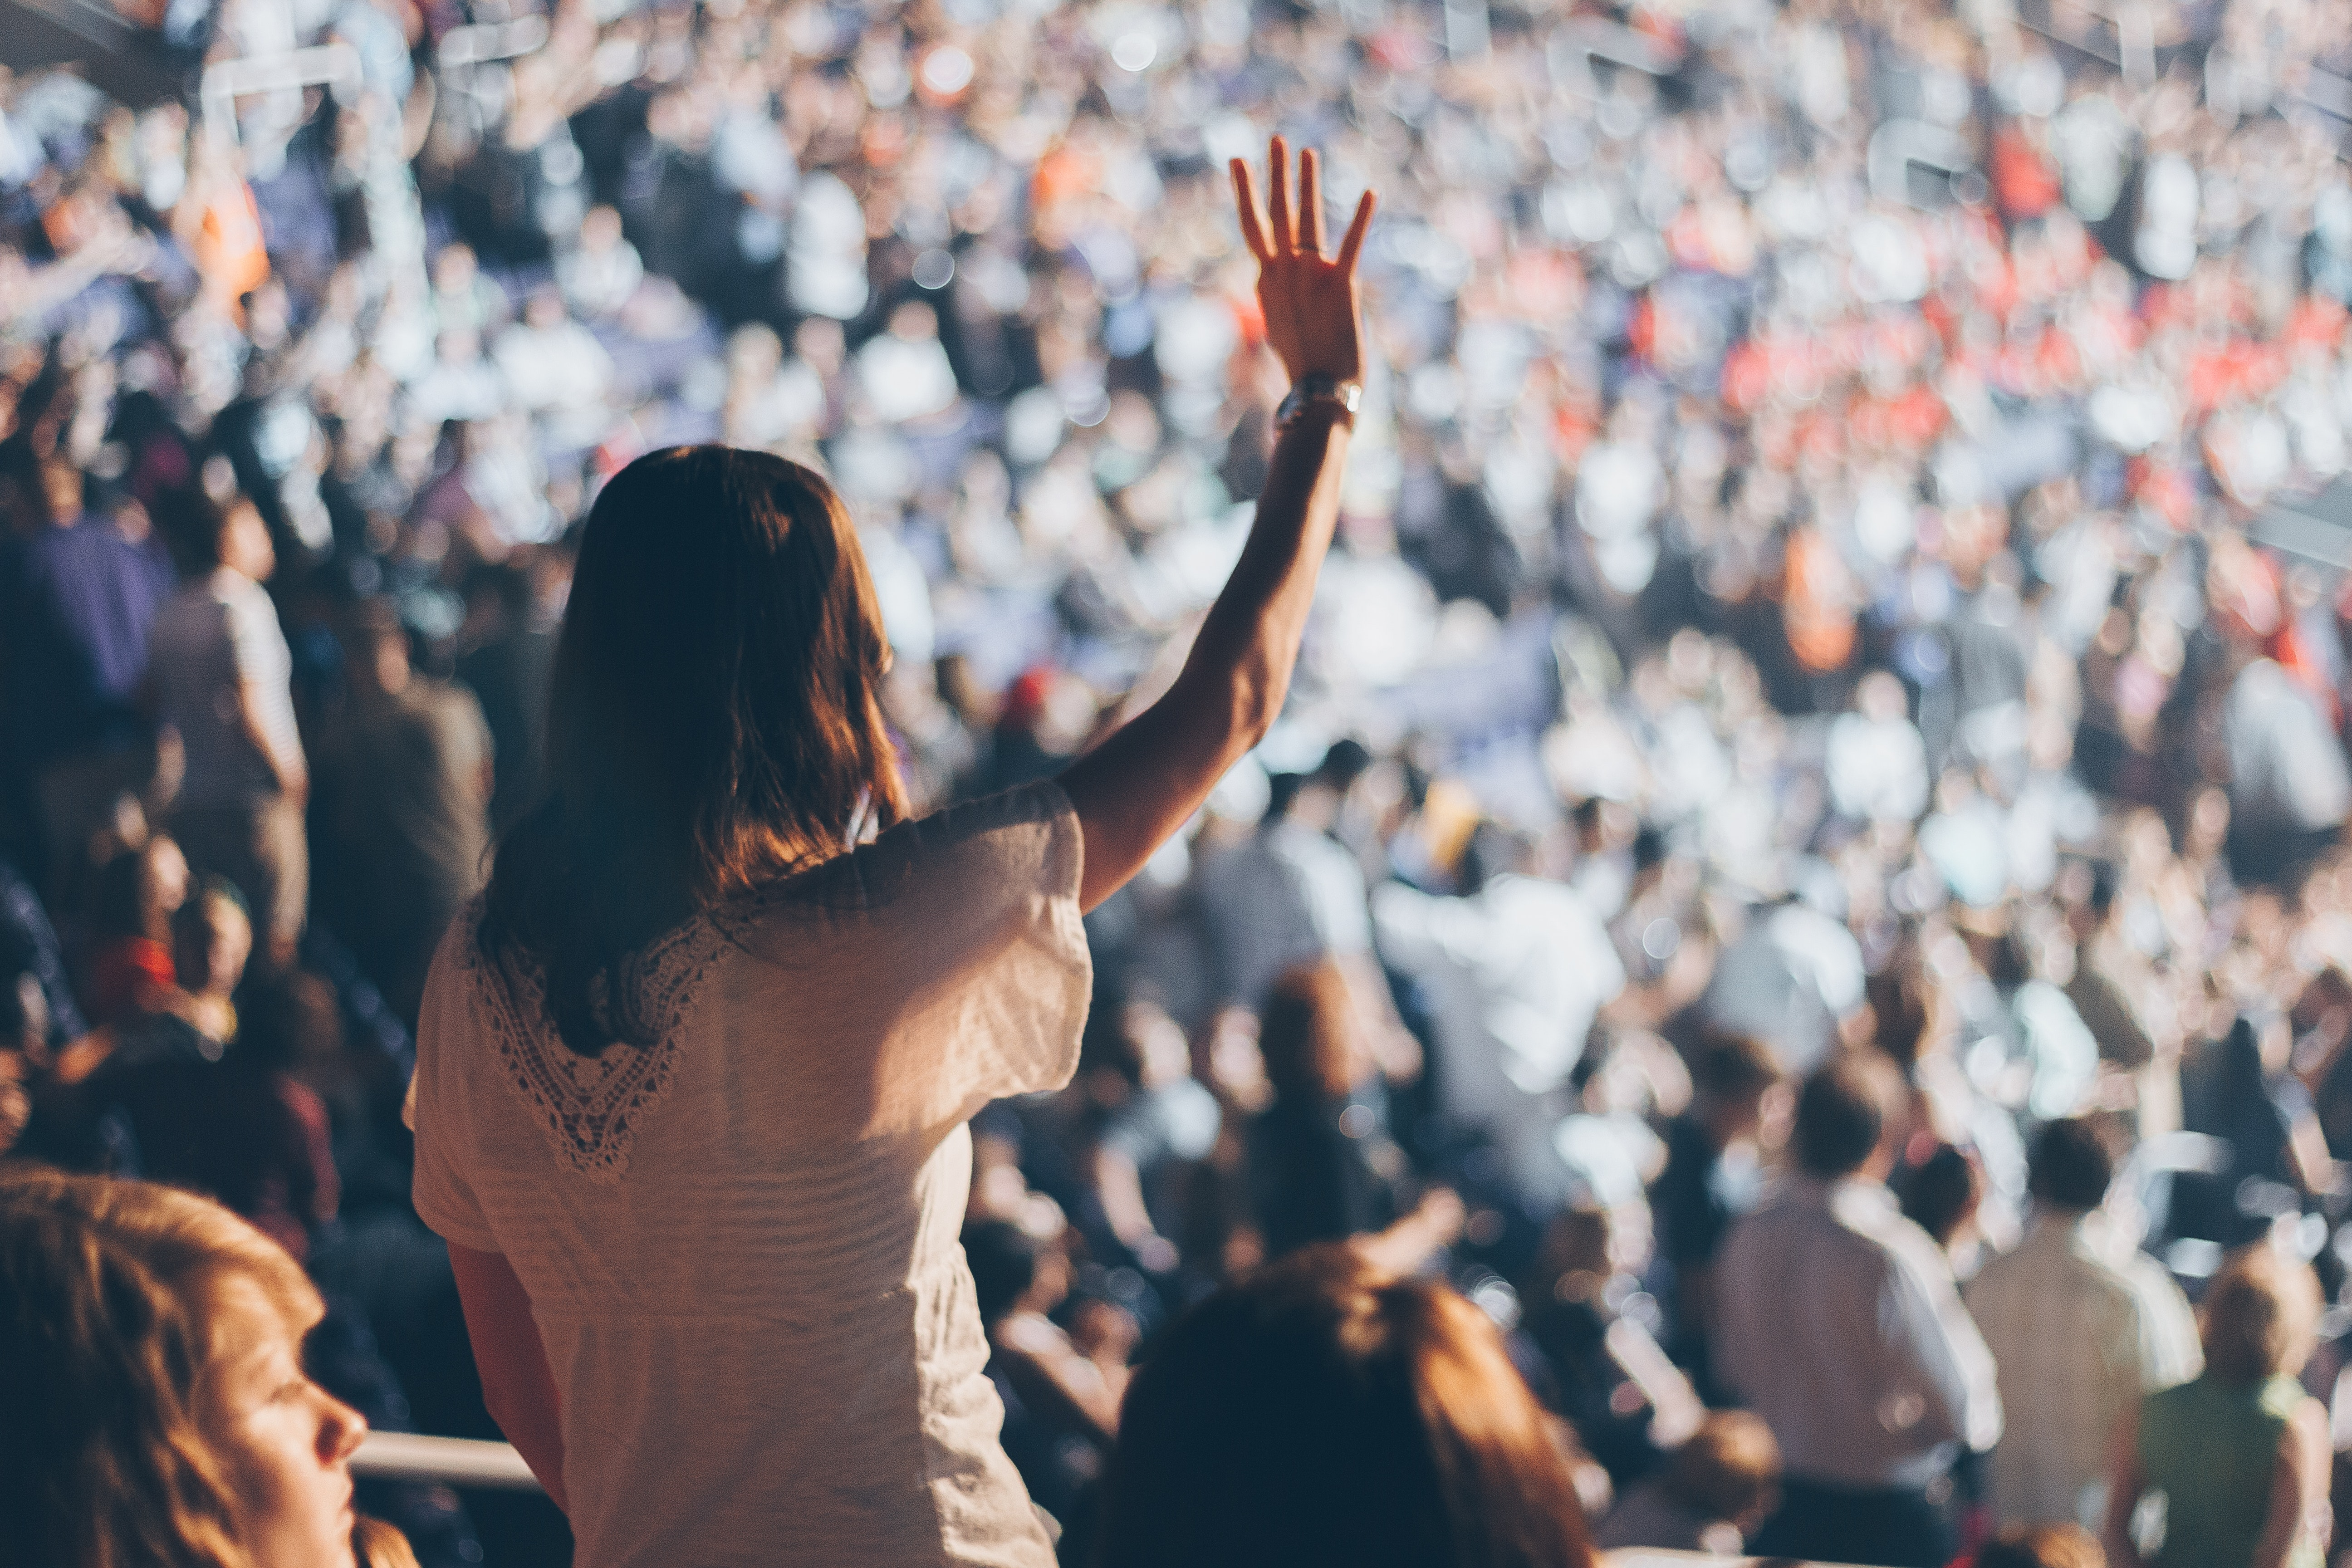 woman in white shirt raising her right hand